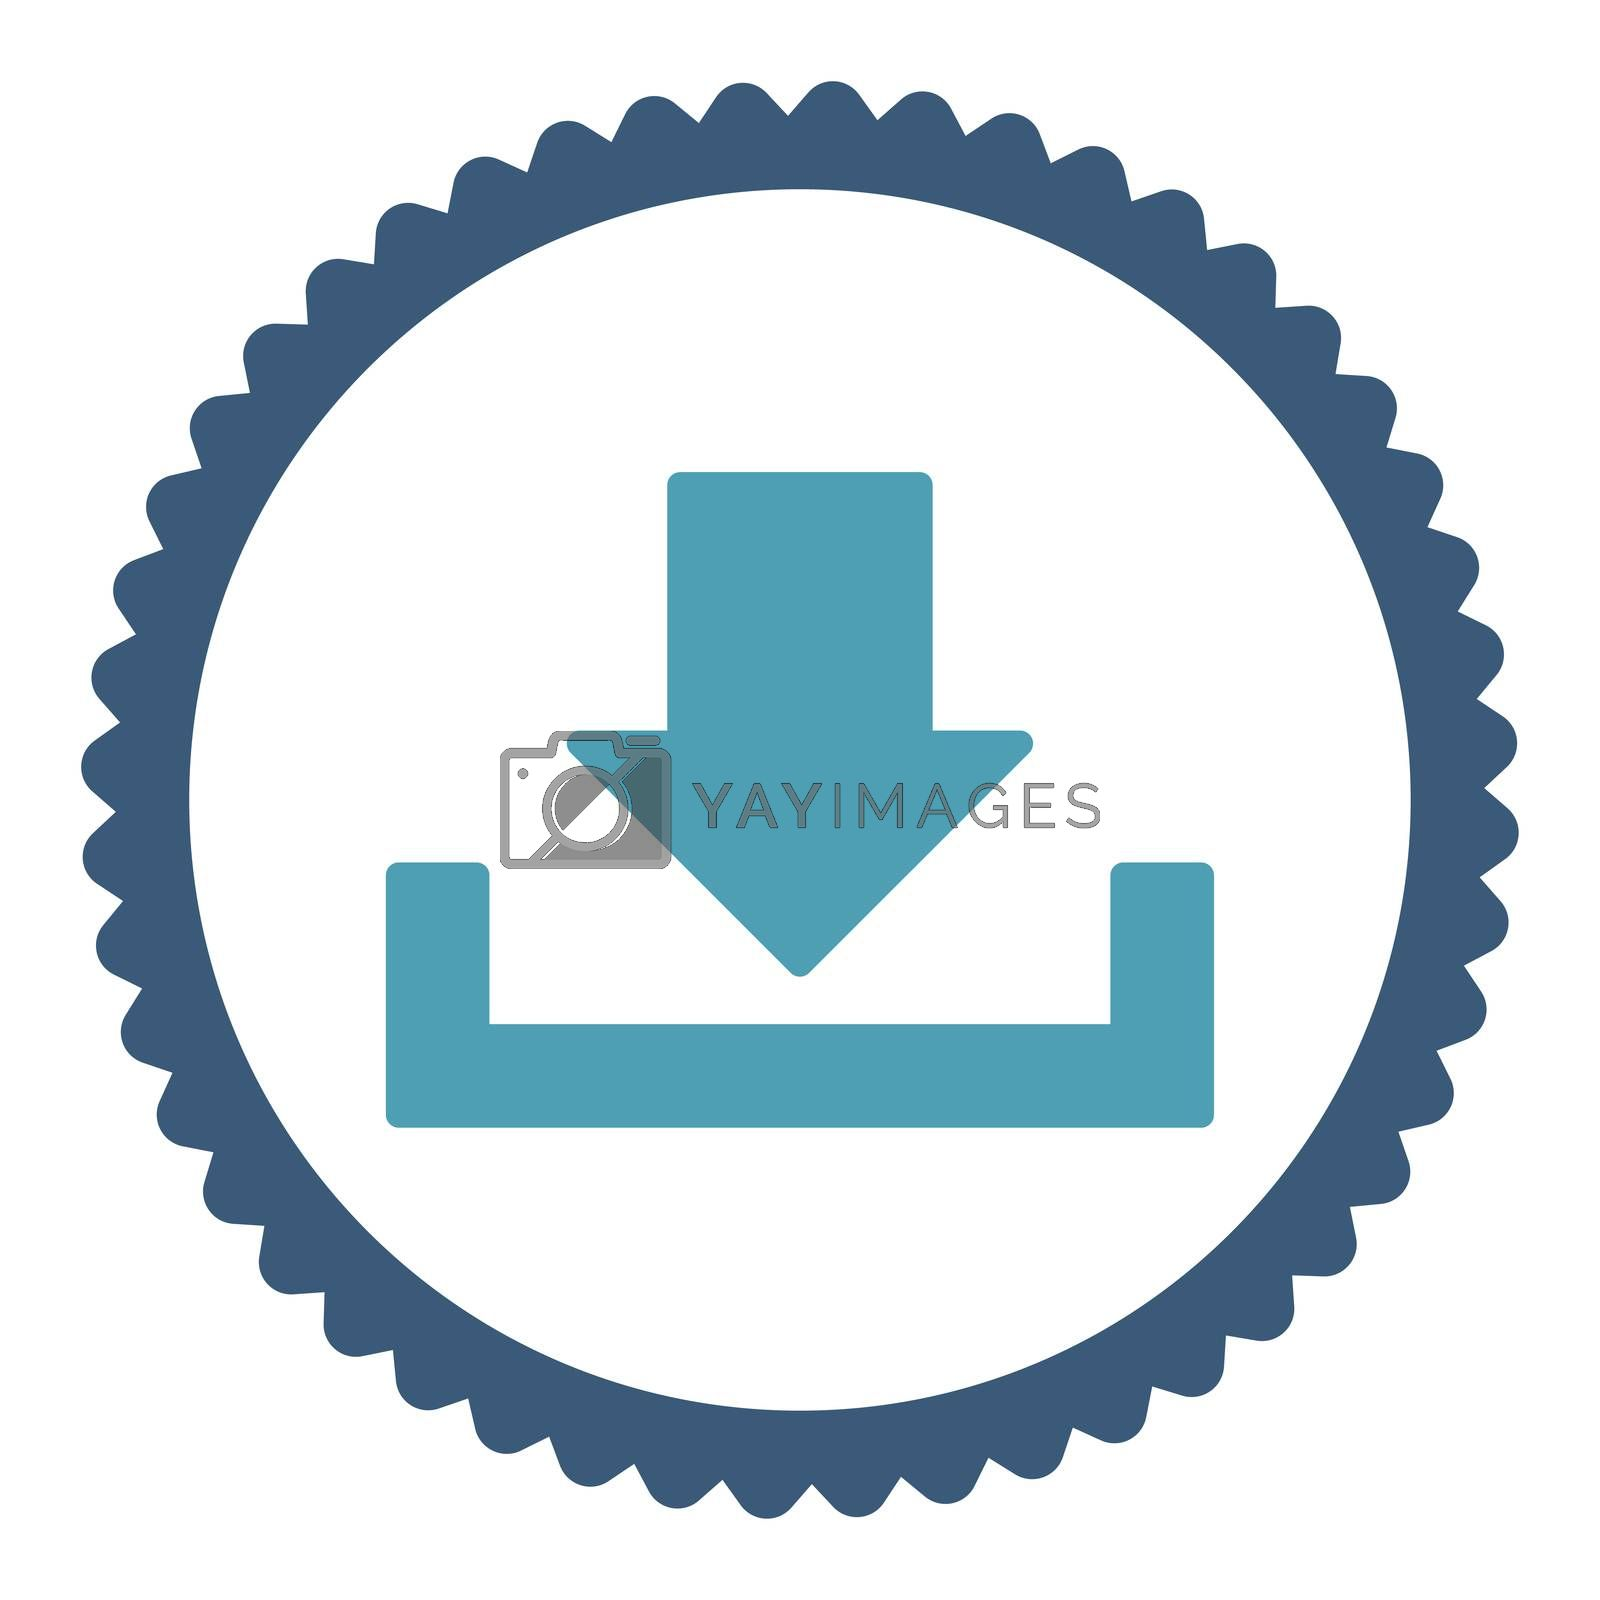 Download flat cyan and blue colors round stamp icon by Aha-Soft